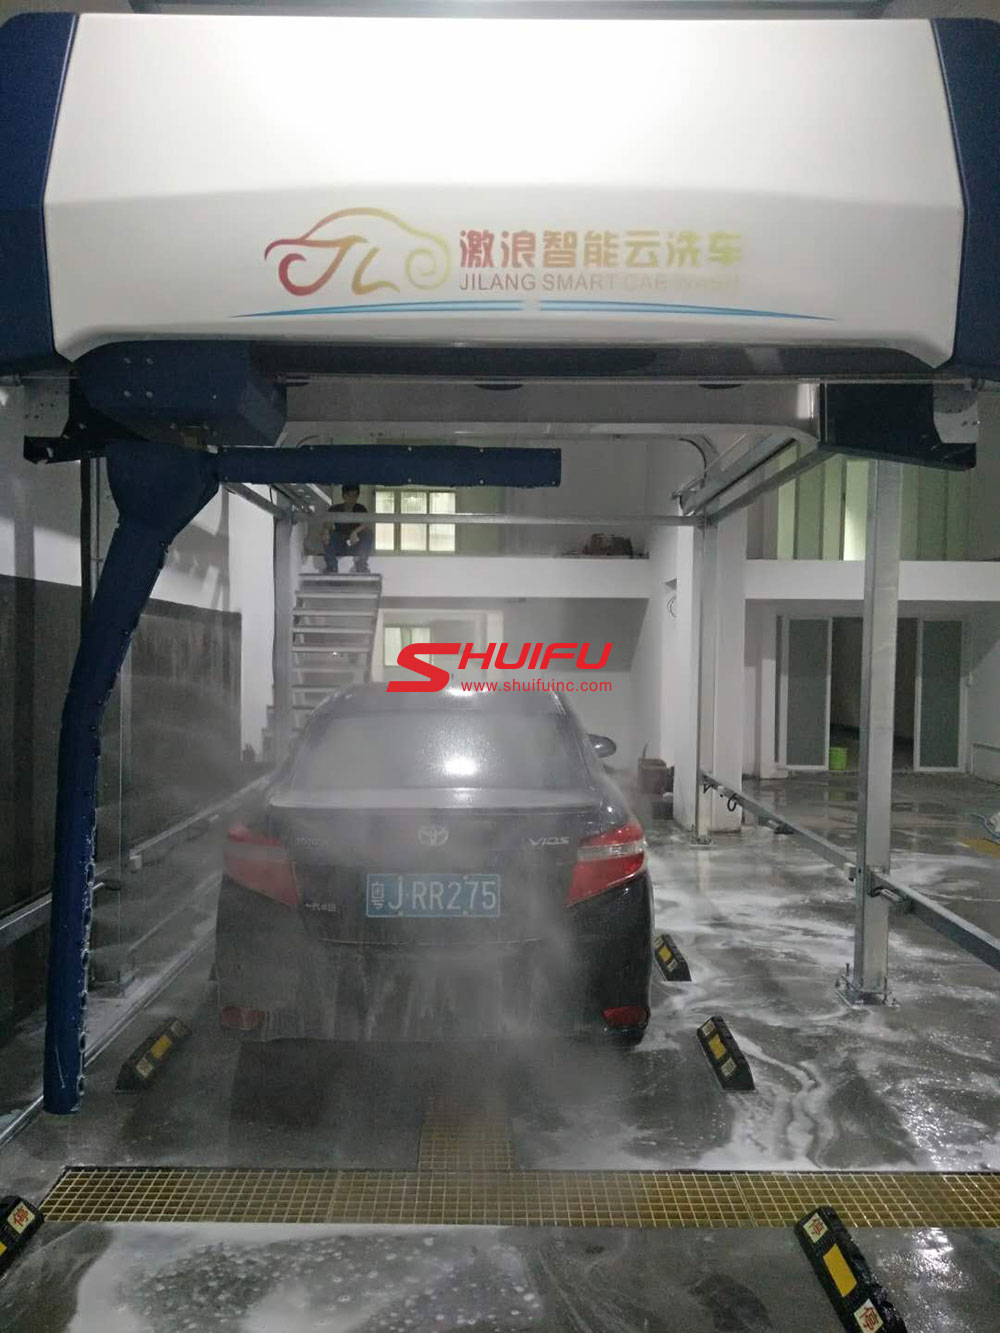 Automatic-car-wash-machine-AXE-OVERHEAD-touchless-carwash-system-installation-finished-in-Asia-manufactured-by-SHUIFU-CHINA-10